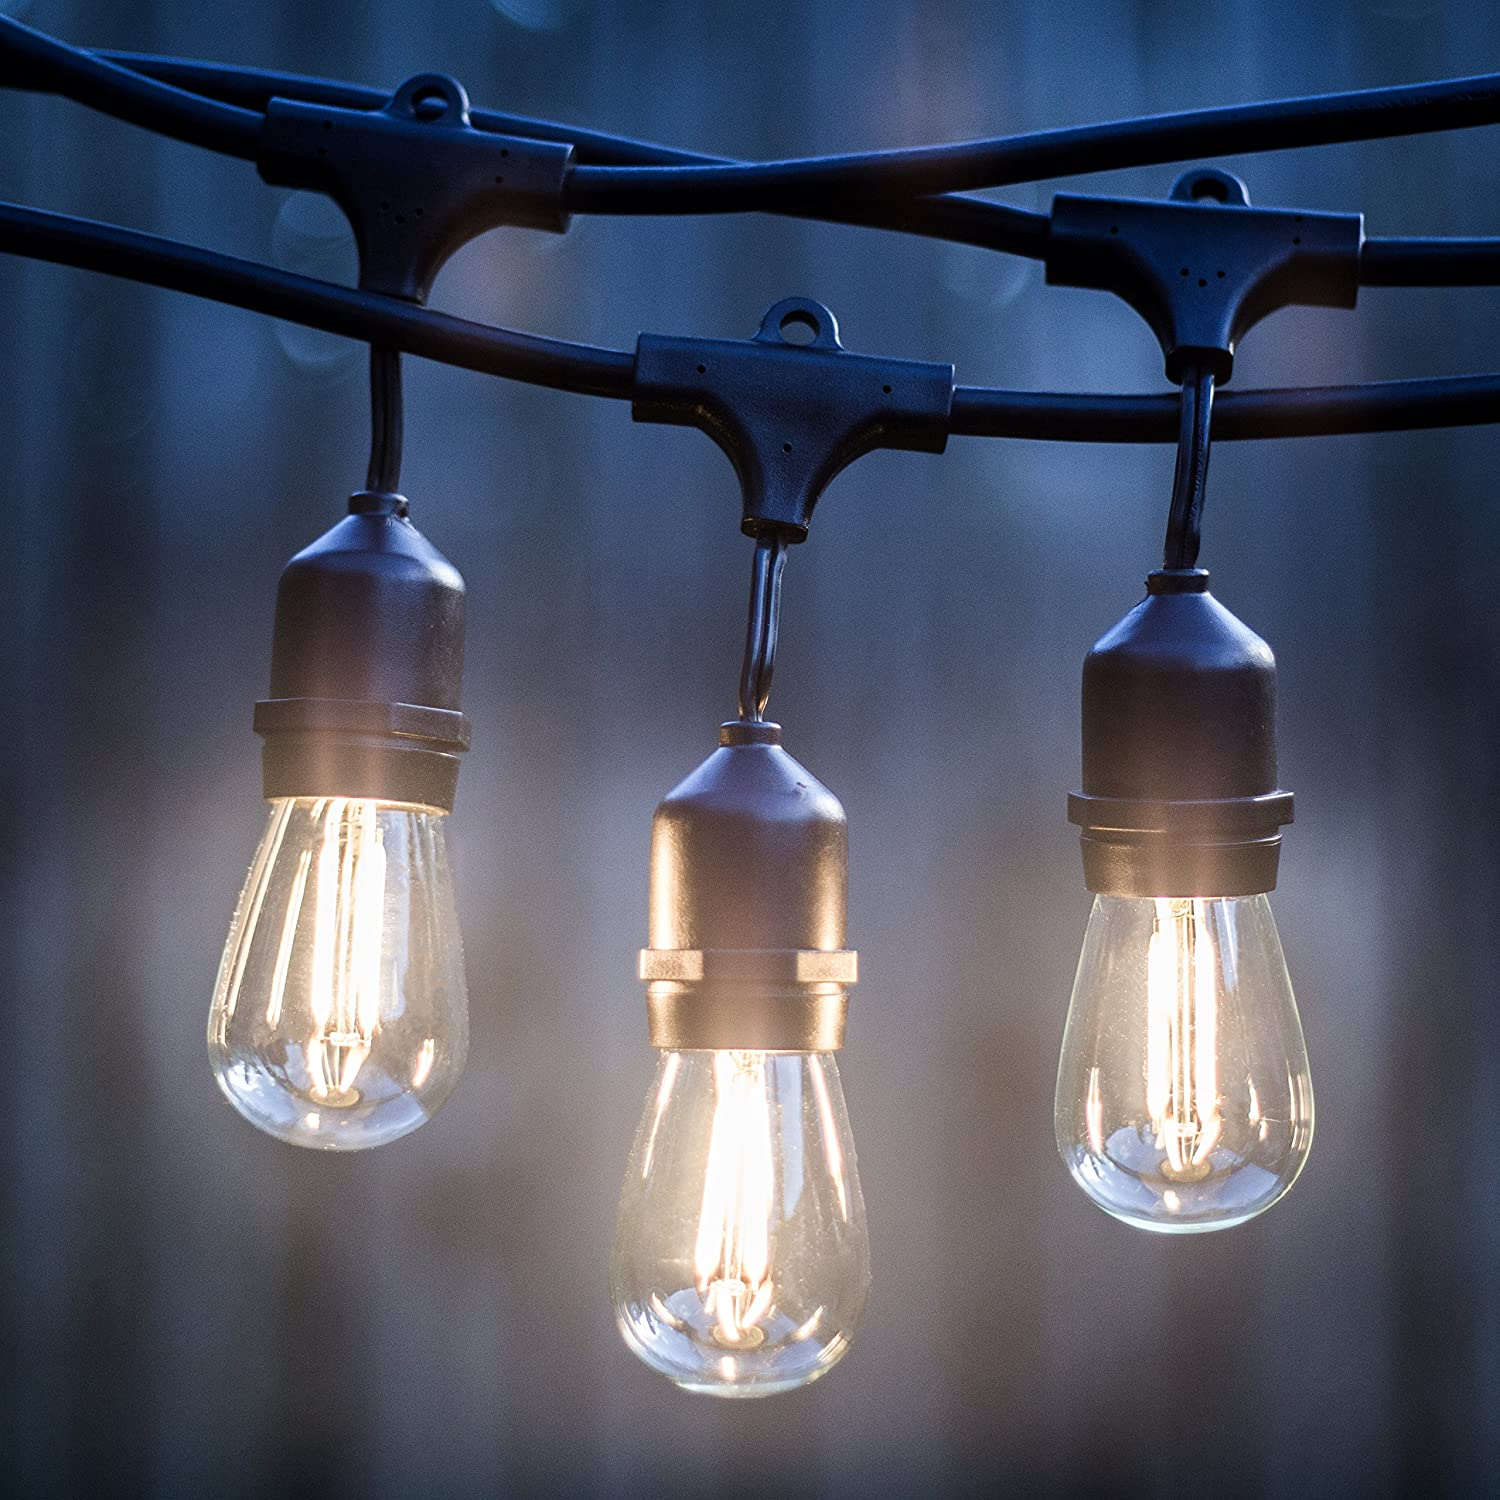 How To Find The Perfect Outdoor Lights For Camping Or Home